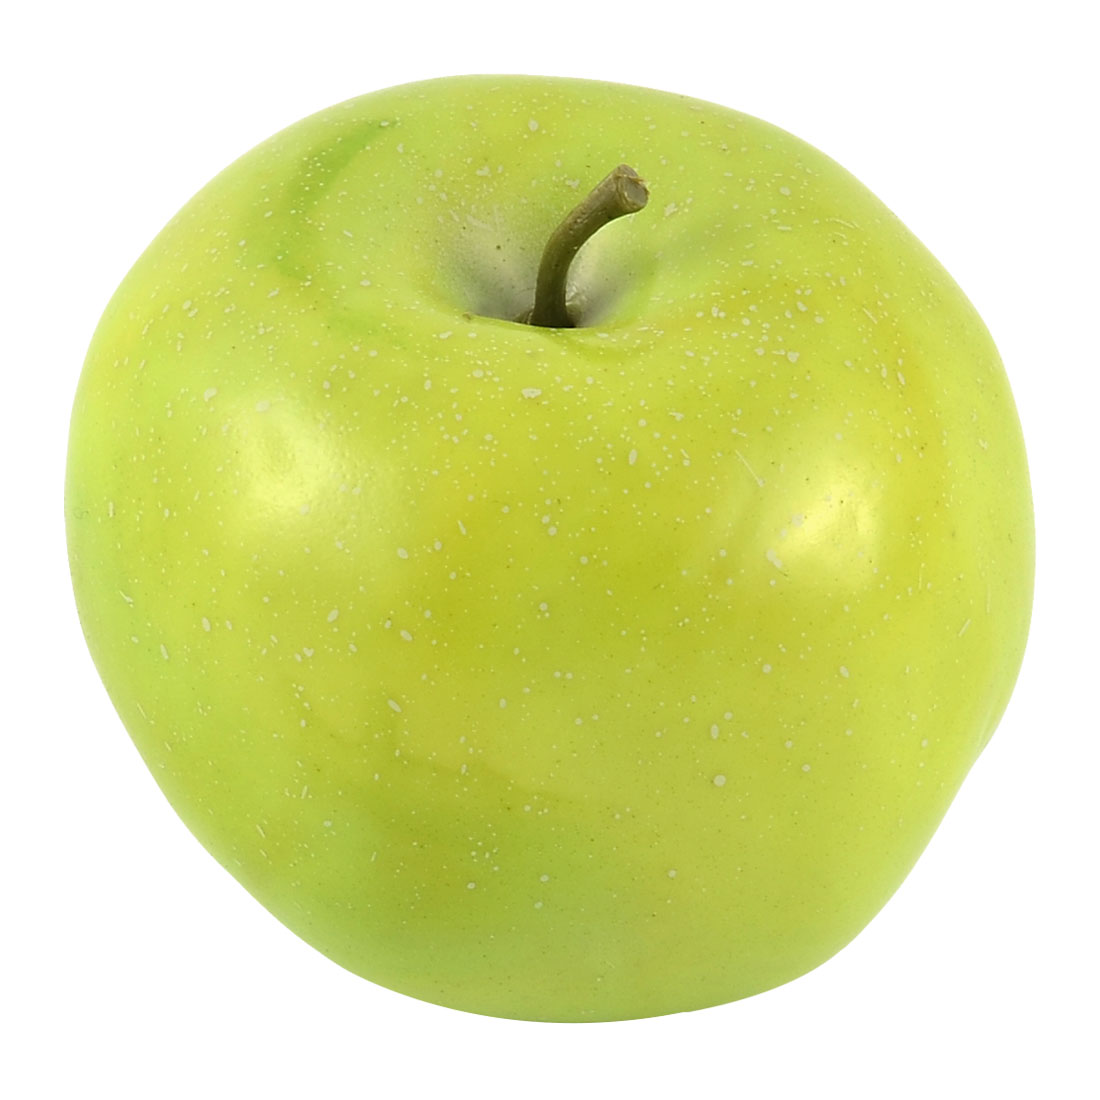 Artificial Fruit Ornament Foam Lifelike Decor Handmade Simulation Apple Green